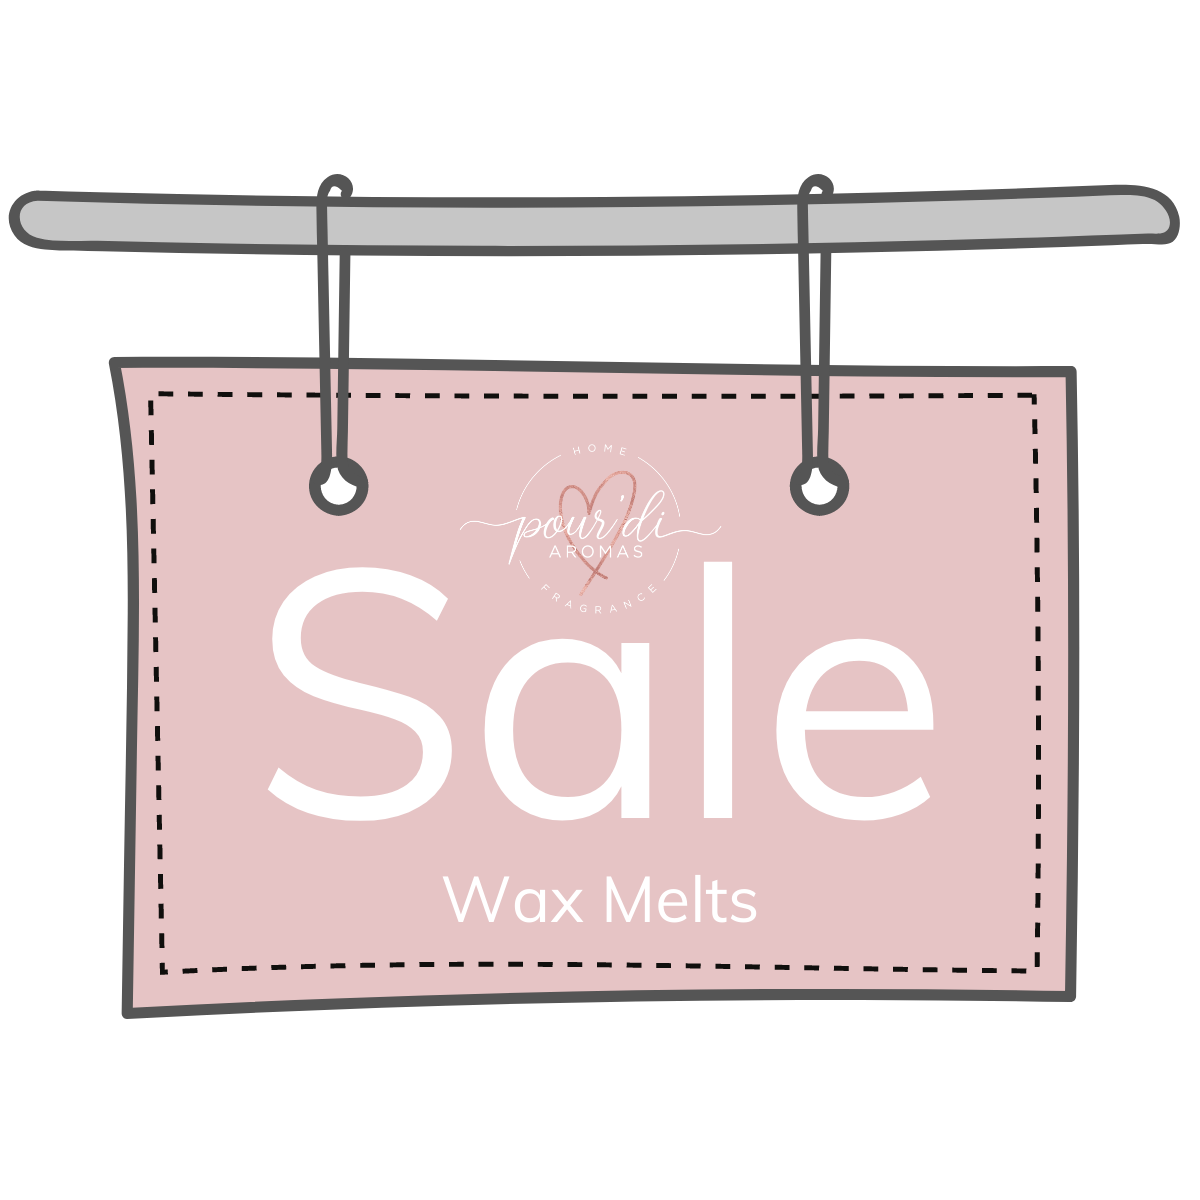 SALE Wax Melts